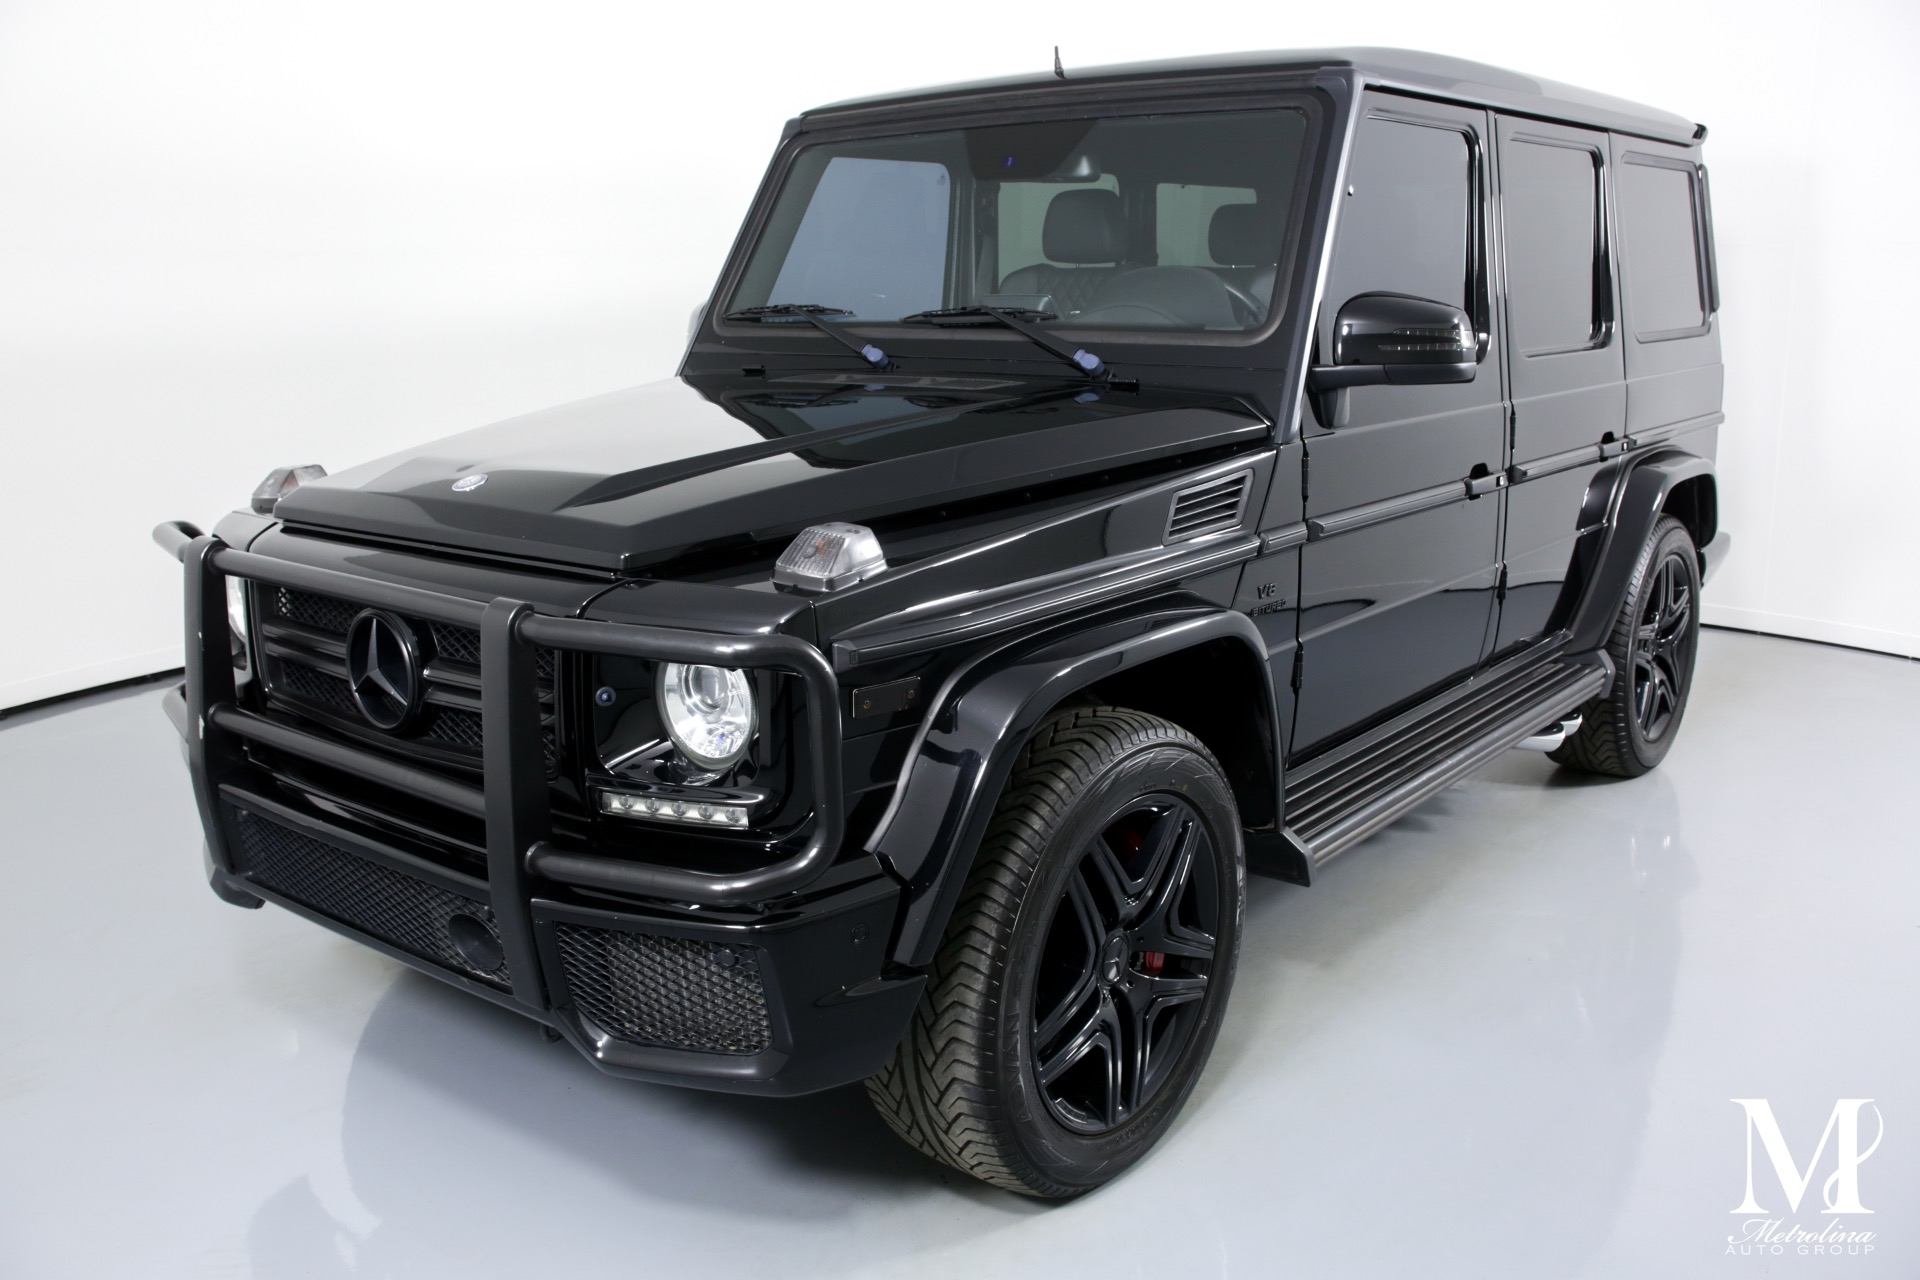 Used 2015 Mercedes-Benz G-Class G 63 AMG for sale Sold at Metrolina Auto Group in Charlotte NC 28217 - 4